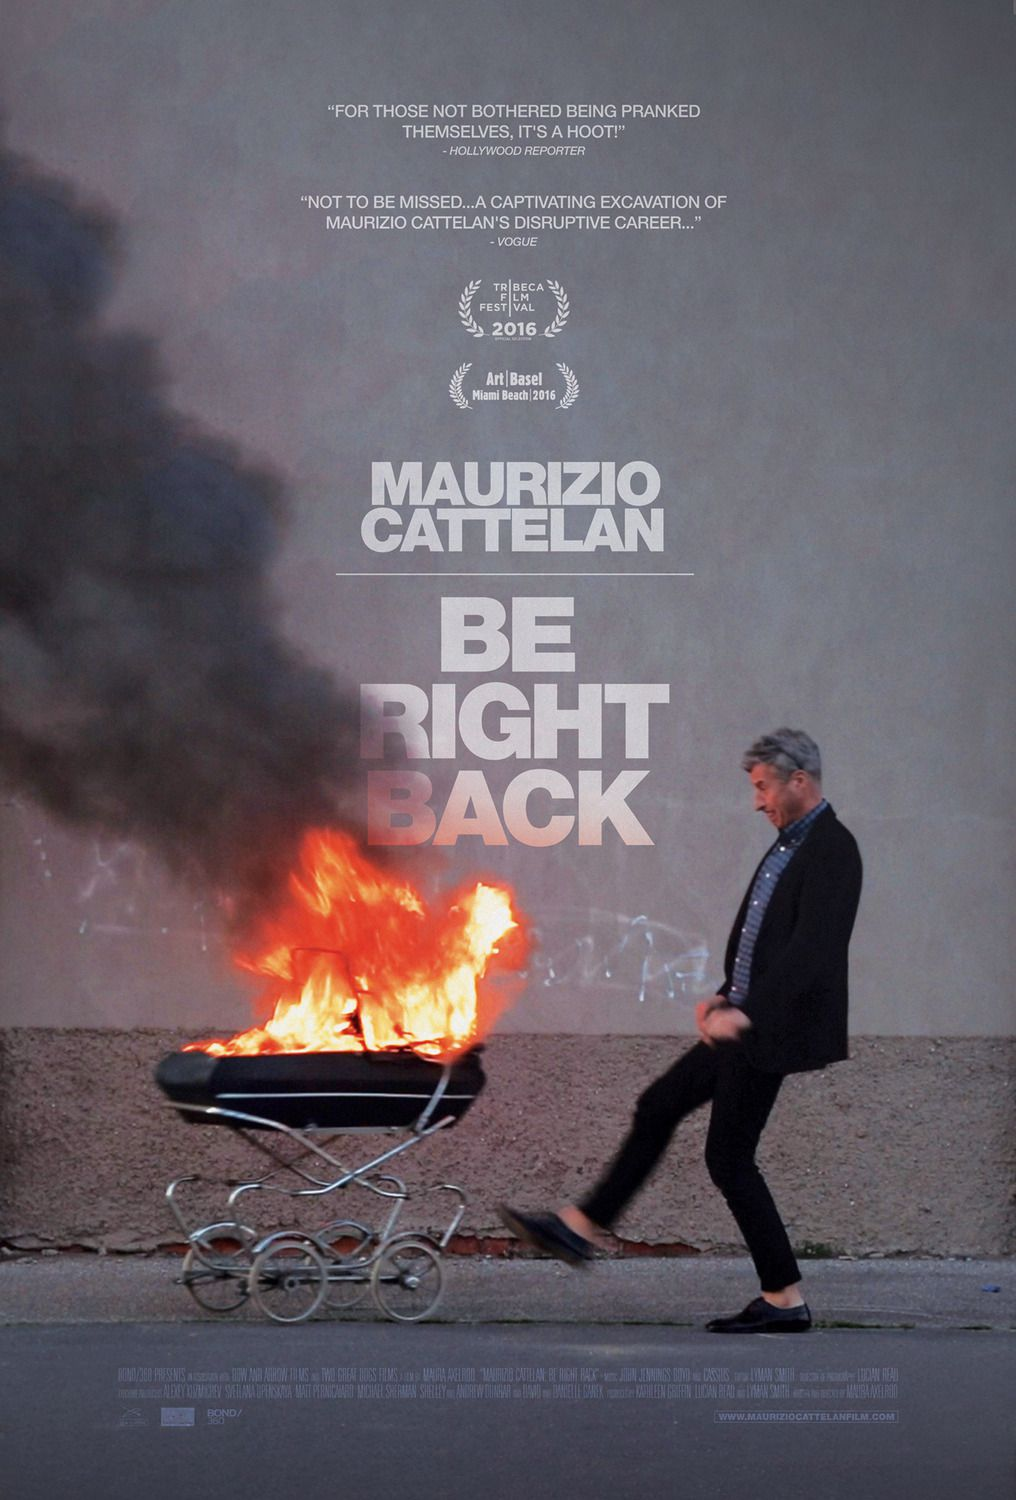 Maurizio Cattelan be Right Back (2016)